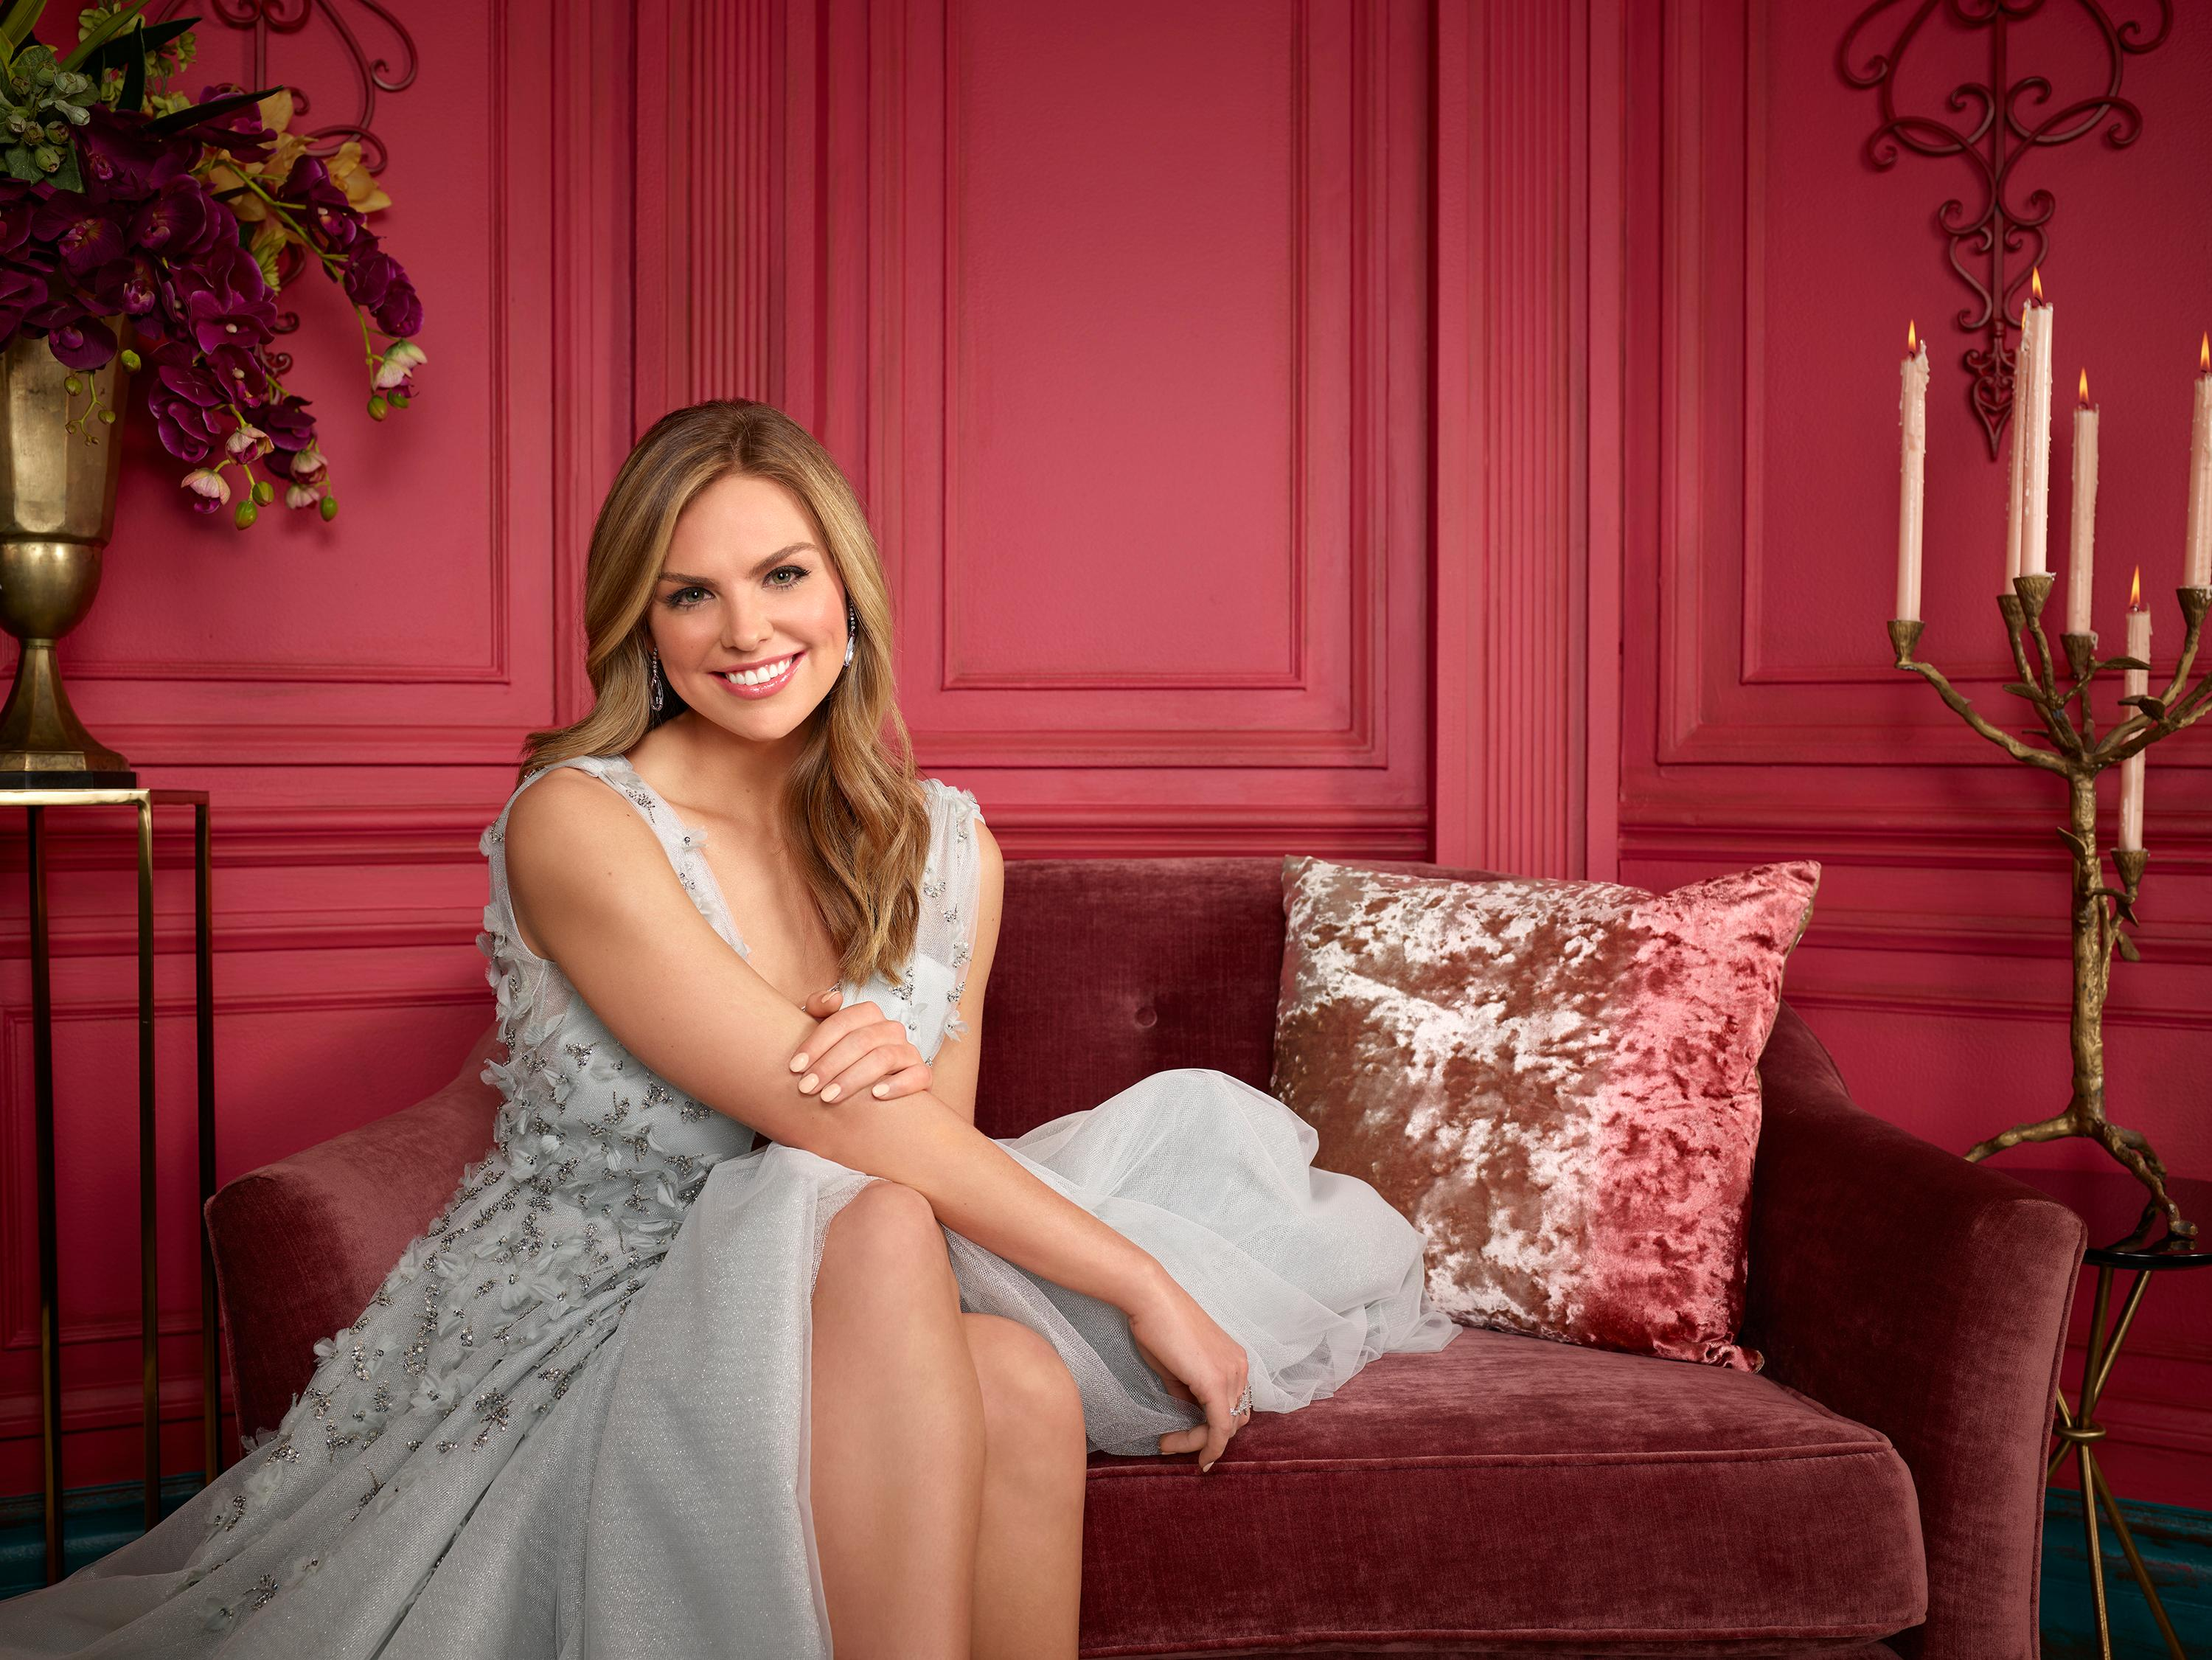 We are just one week away from watching Hannah Beast begin her journey to finding love on the 15th season of The Bachelorette! And we FINALLY have all the deets on the 30 handsome gents who will be vying for her heart this season. Spoiler alert: We have THREE locals in the running this season! (Image: ABC/Ed Herrera)